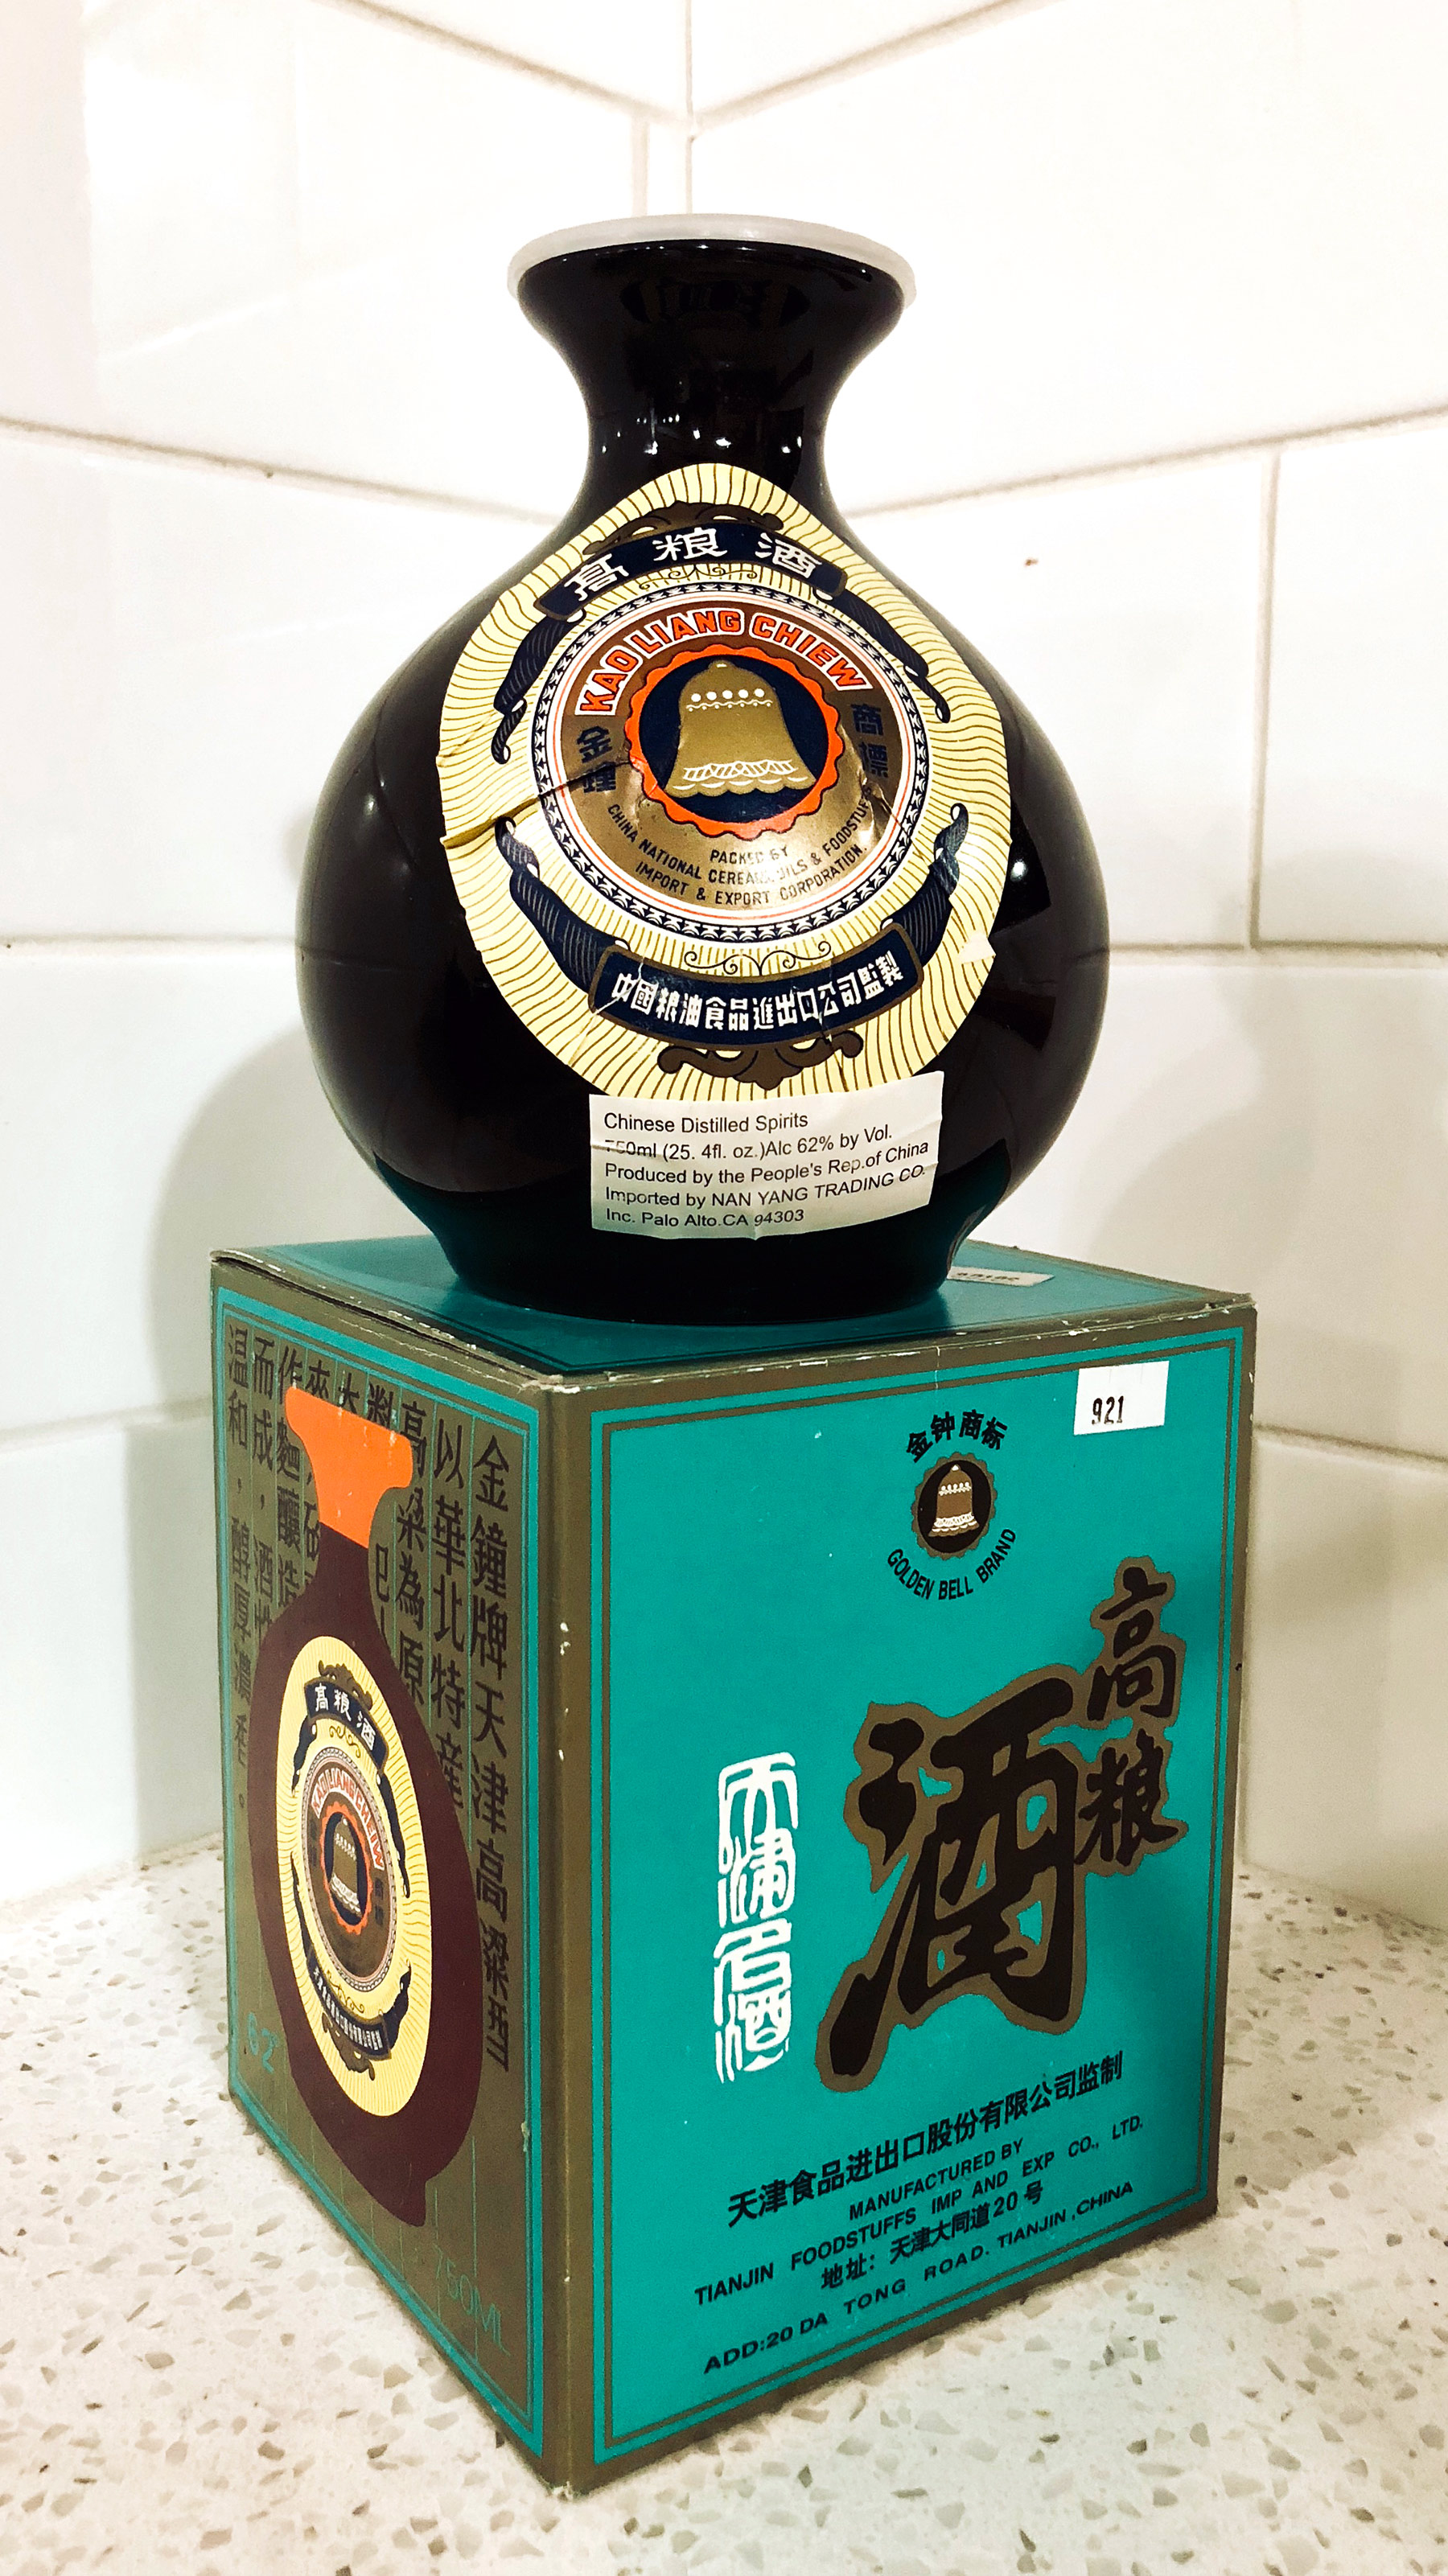 Golden Bell Kaoliang baijiu kao liang chiew